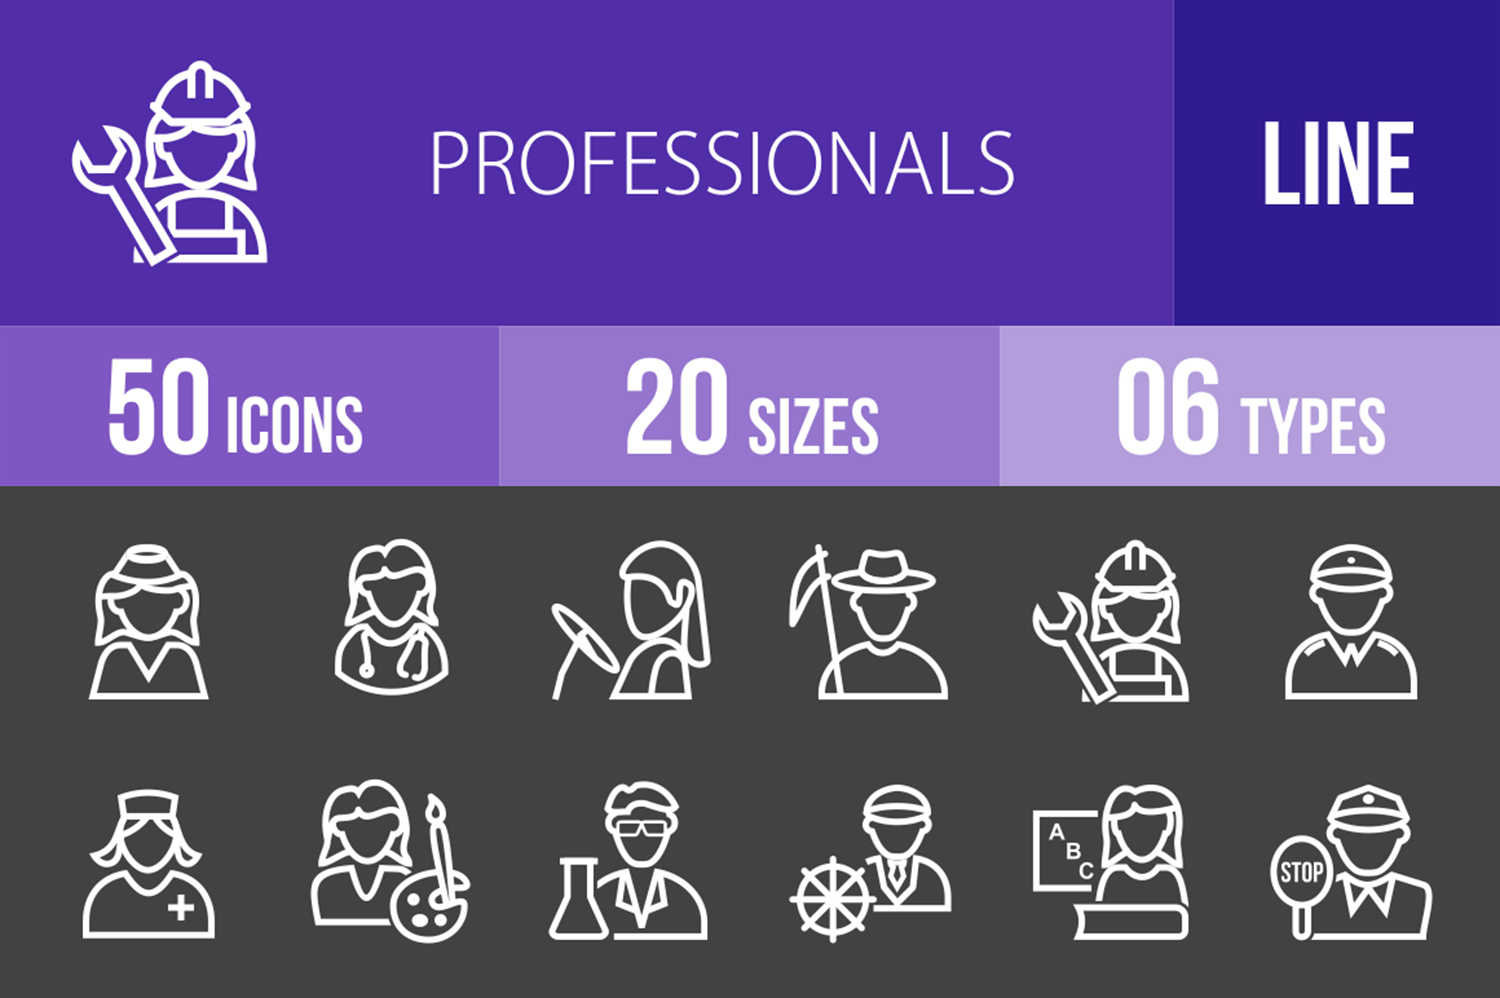 50 Professionals Line Inverted Icons example image 1